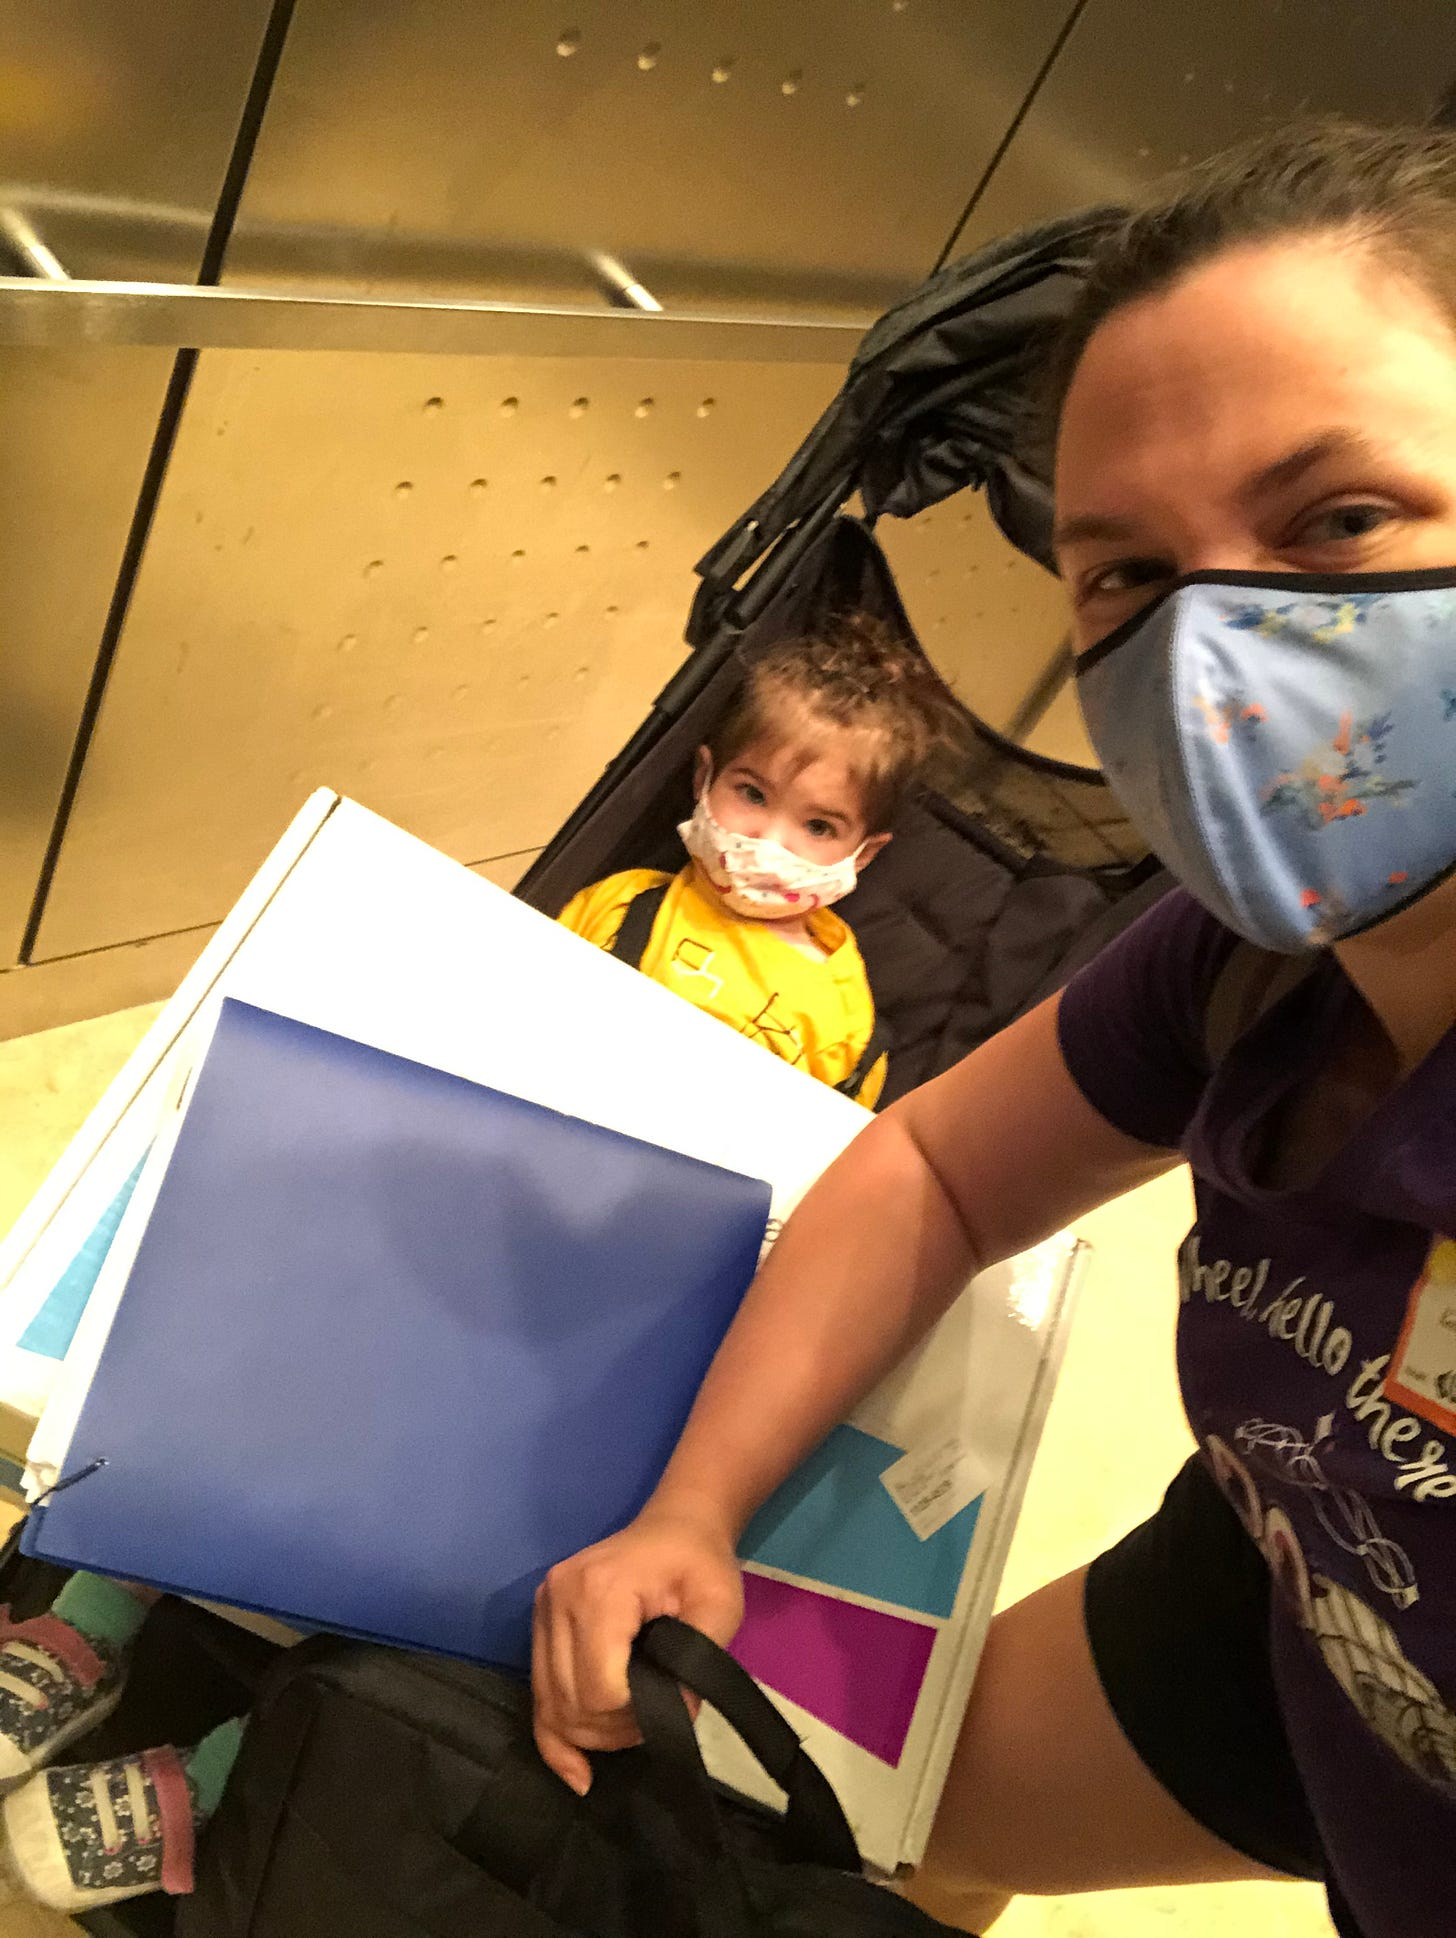 Photo of mom and child in an elevator, the child has an enormous box on her lap.